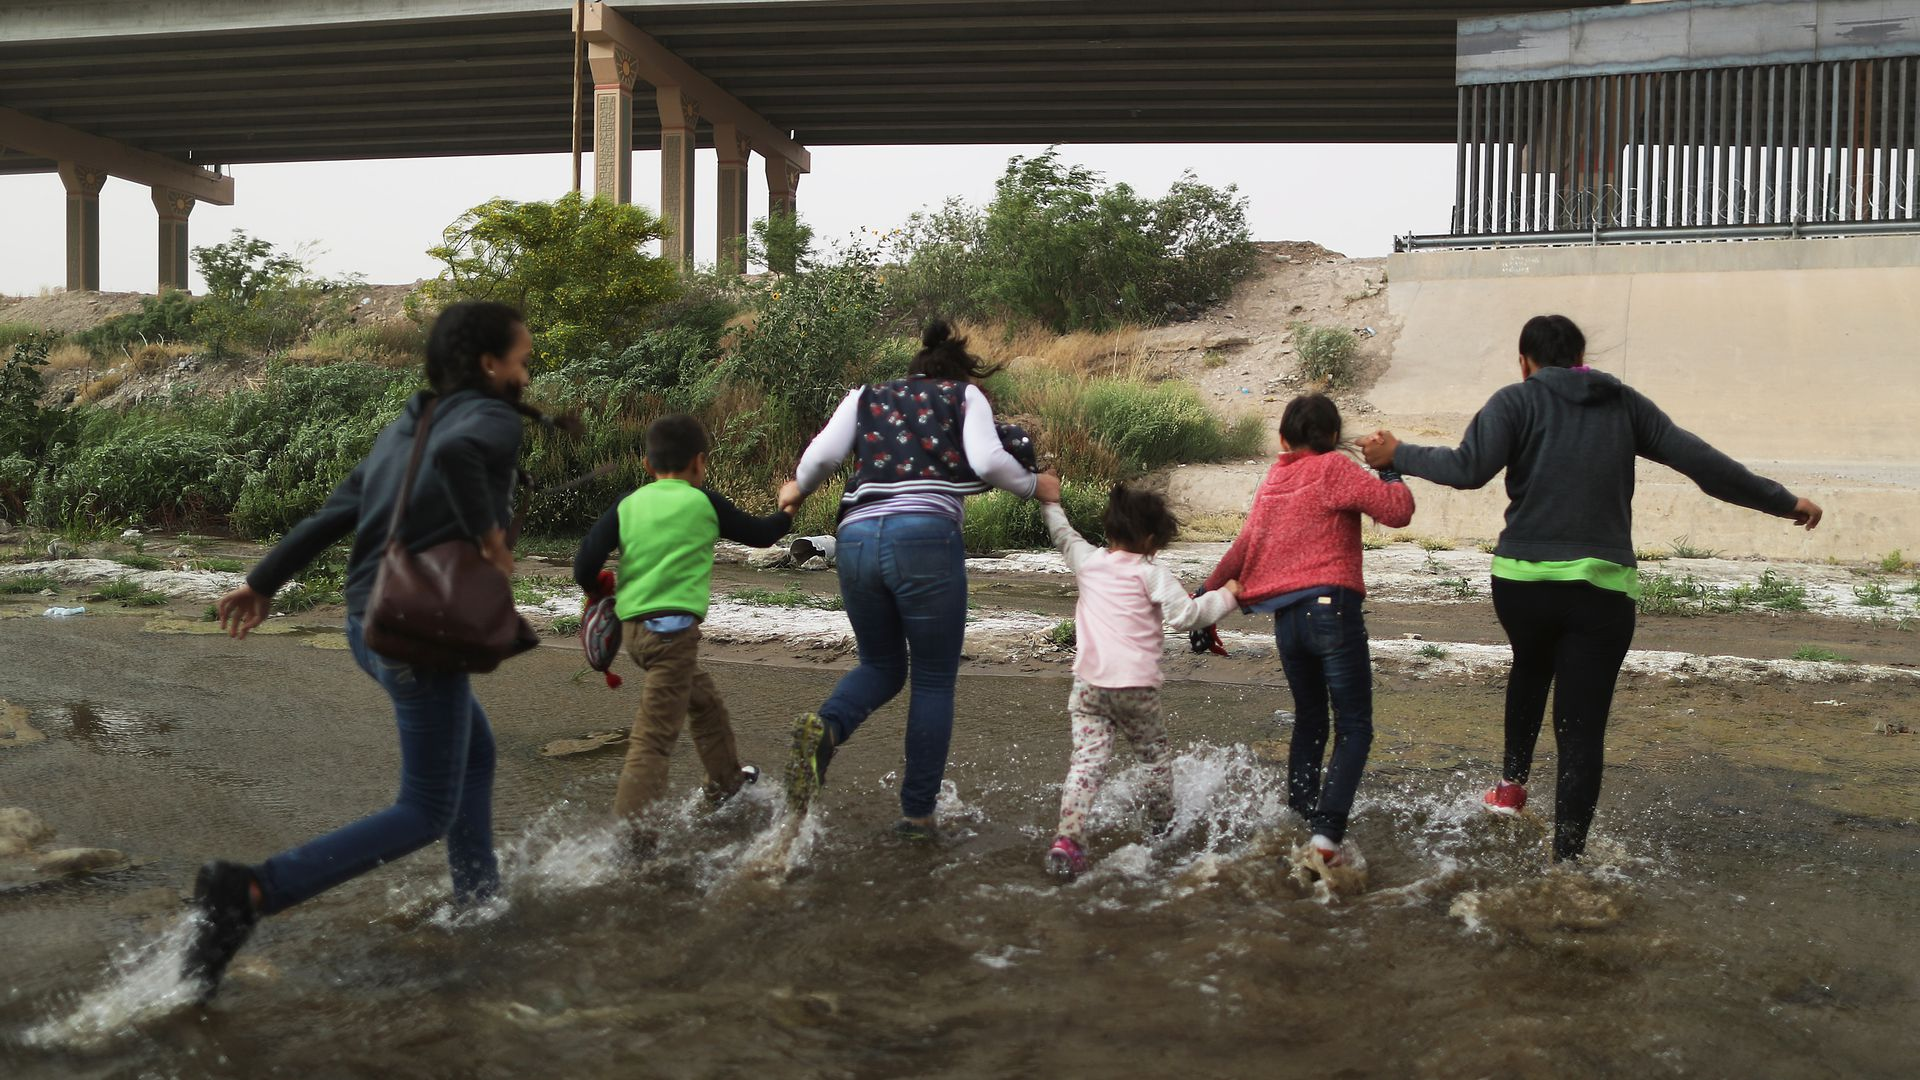 A group of 5 migrant women and young girls run through a puddle toward the U.S. border.